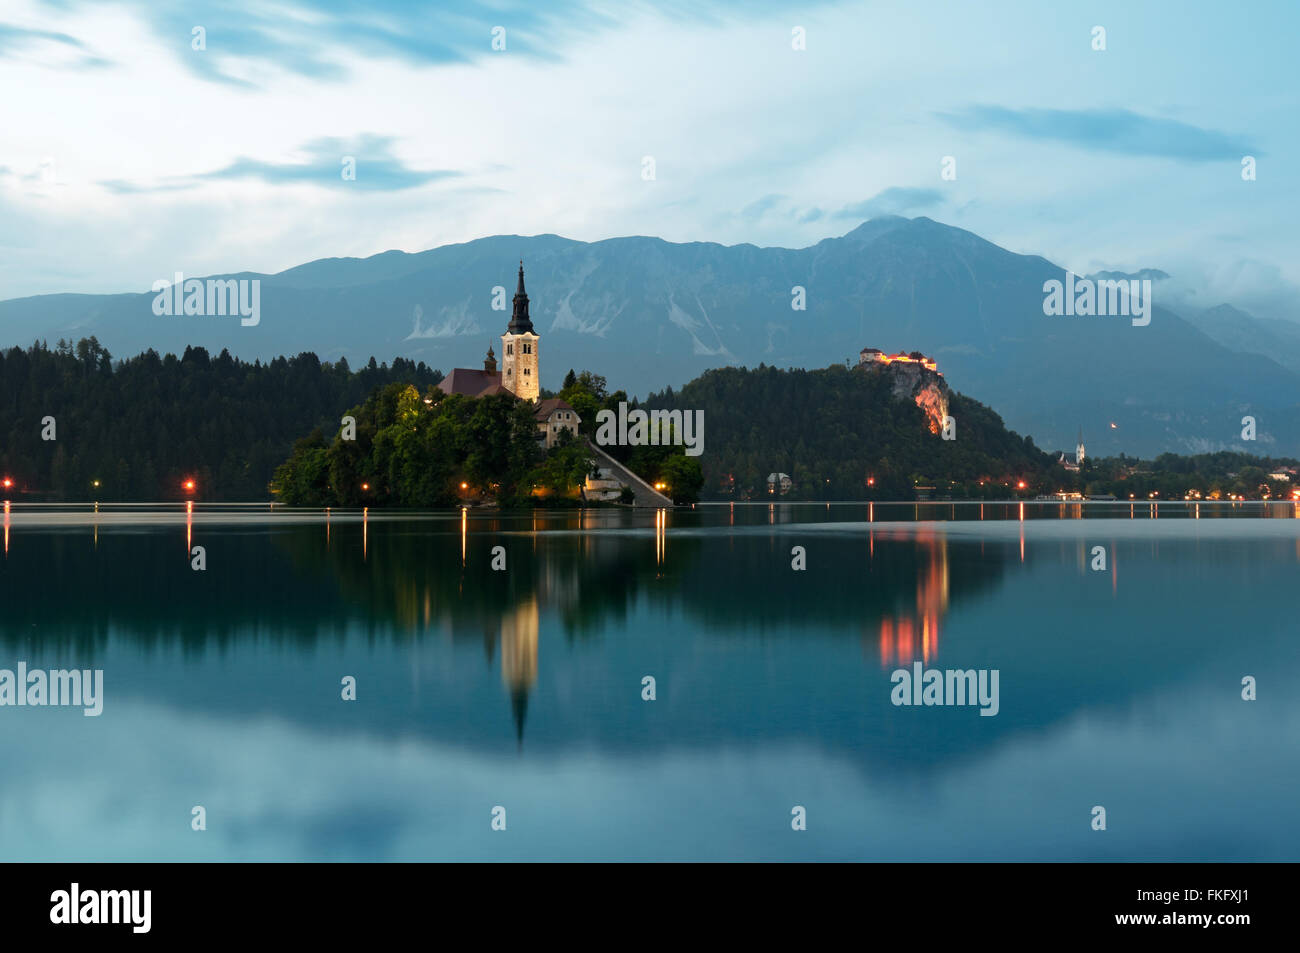 Lake bled with the illuminated St. Mary´s Church of the Assumptionon at dusk. - Stock Image